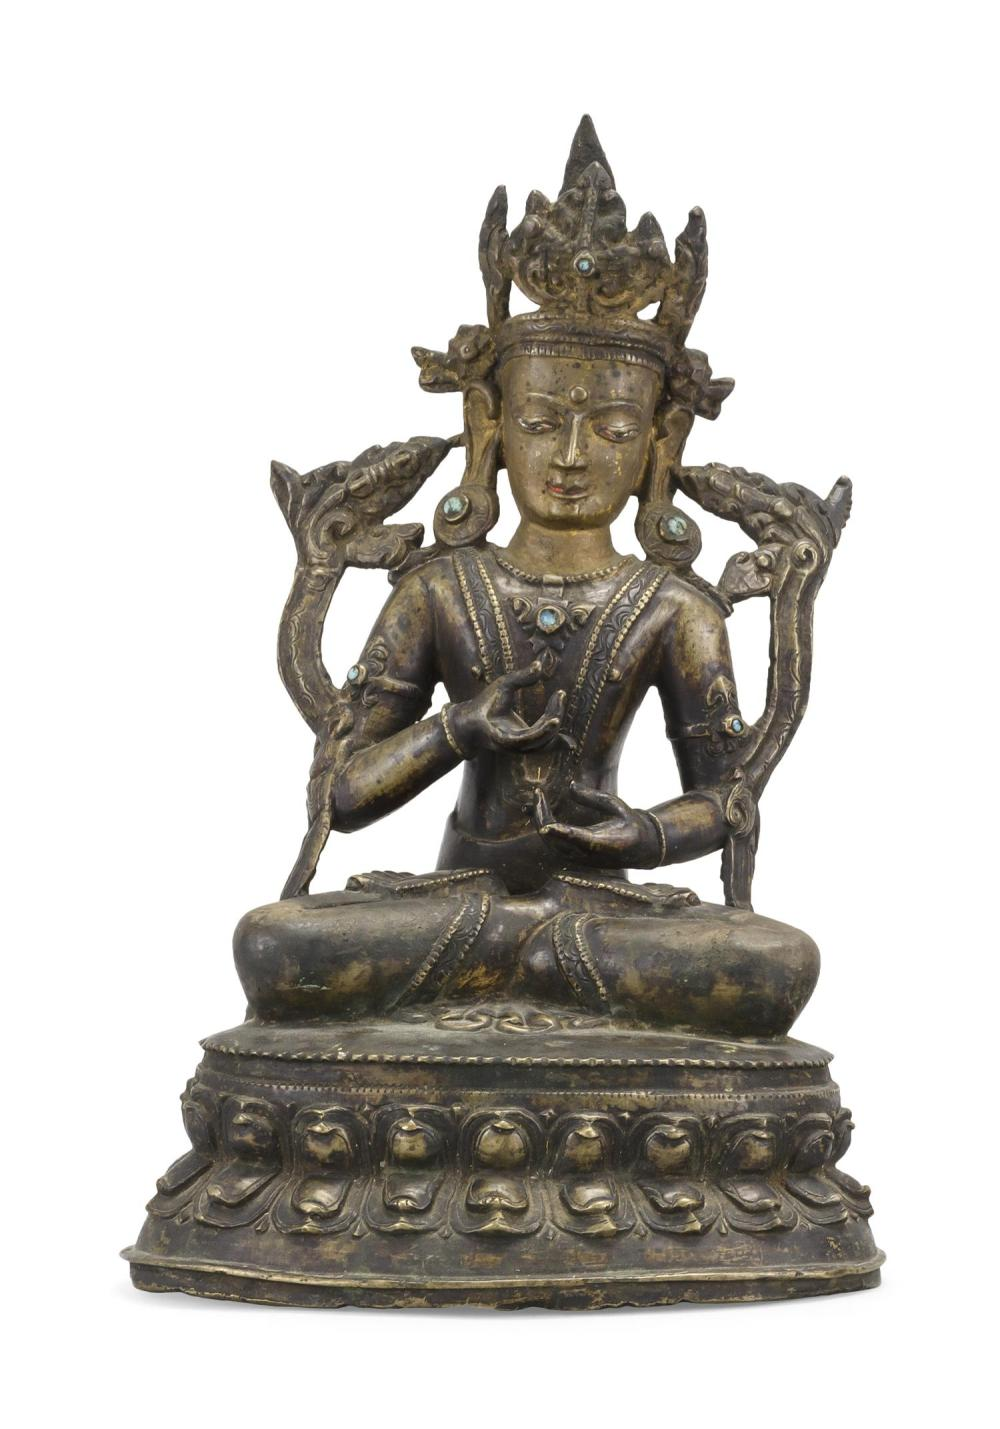 "NEPALESE BRONZE FIGURE OF BUDDHA In seated position on a lotus throne. Inset turquoise details. Height 10.25""."